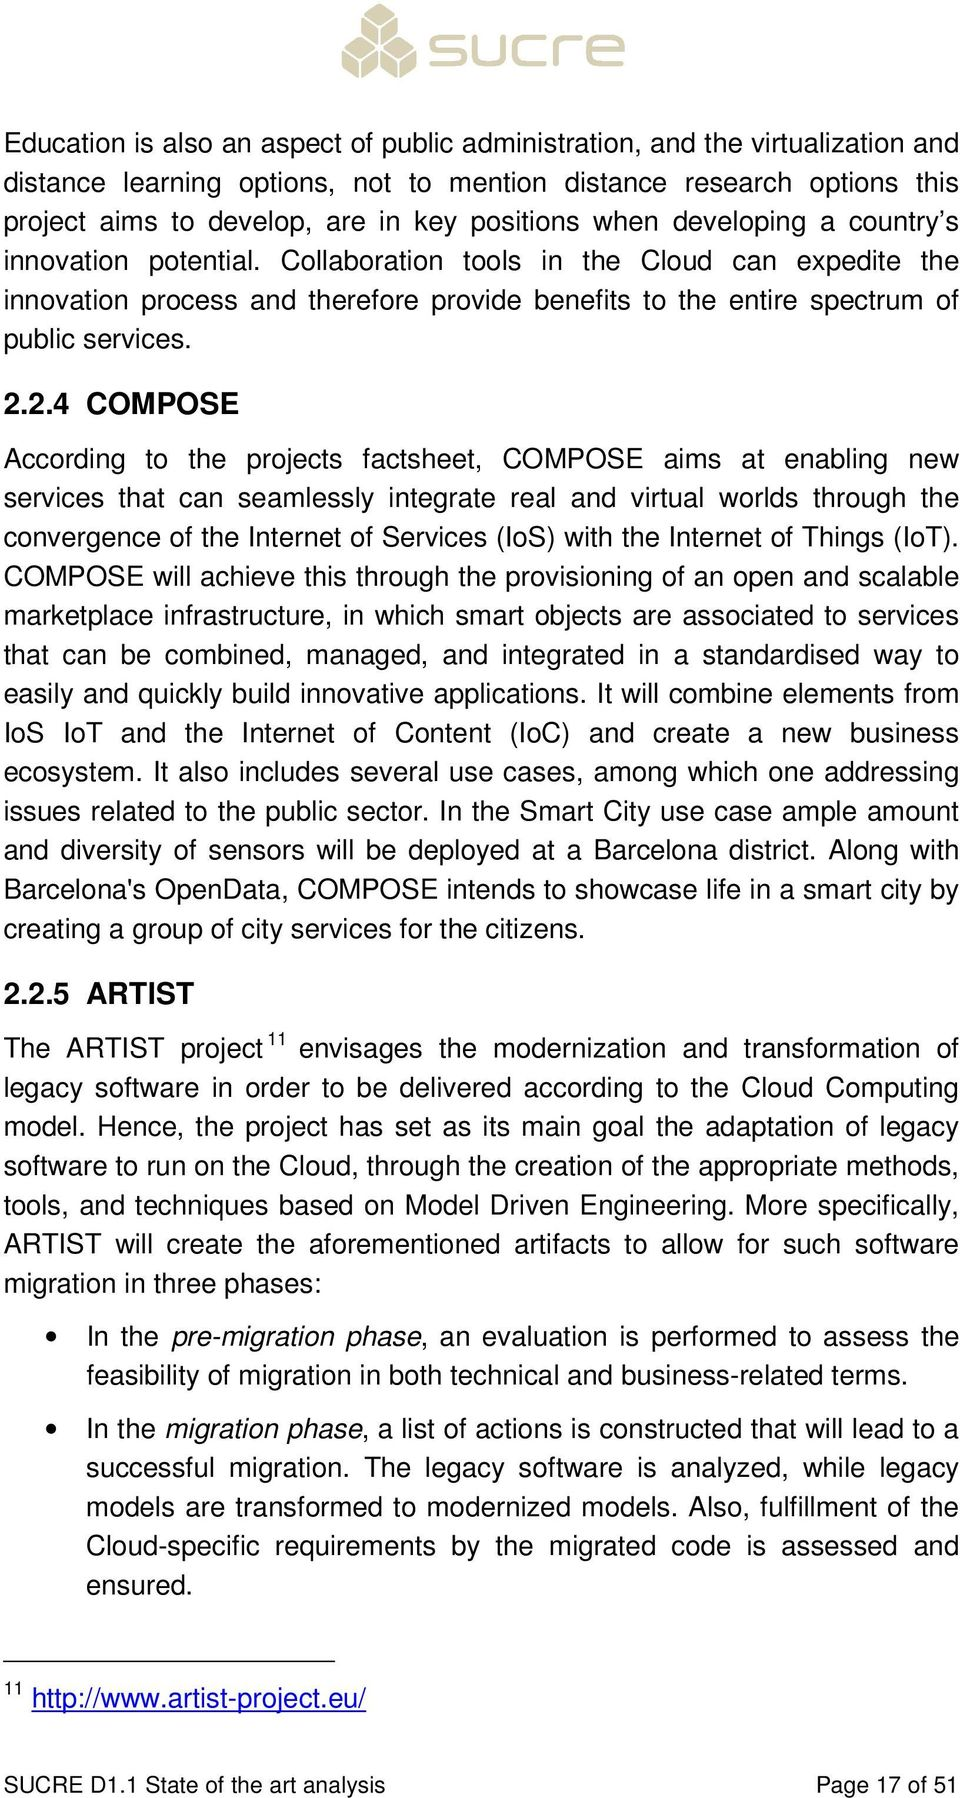 2.4 COMPOSE According to the projects factsheet, COMPOSE aims at enabling new services that can seamlessly integrate real and virtual worlds through the convergence of the Internet of Services (IoS)